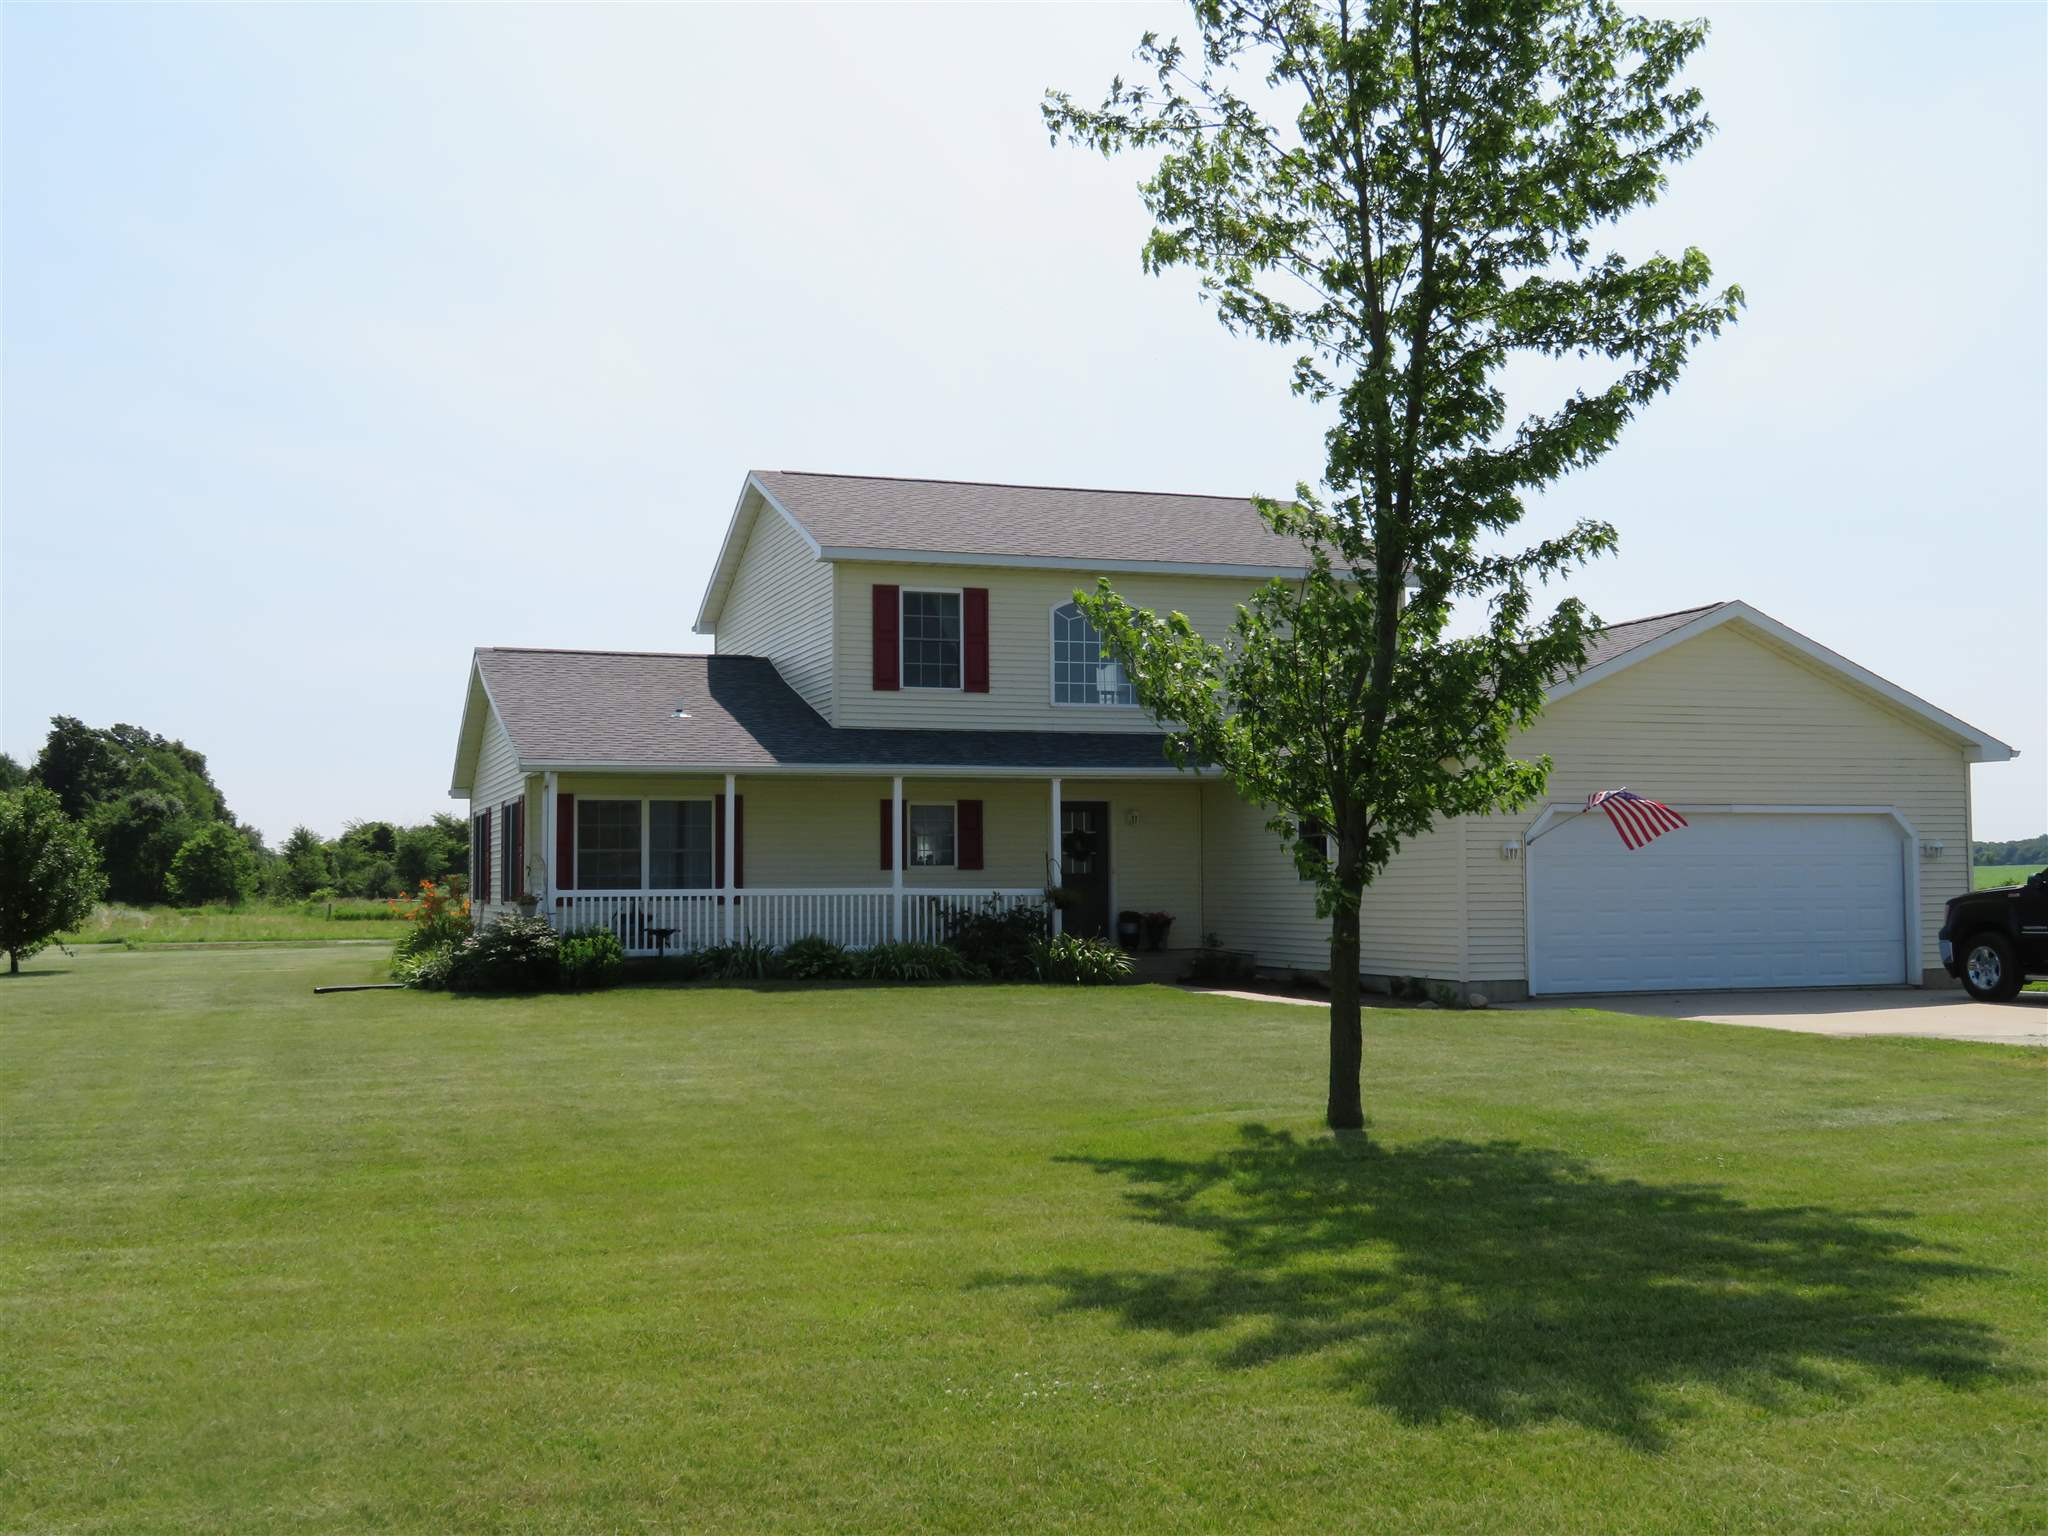 69988 County Road 117, New Paris, IN 46553